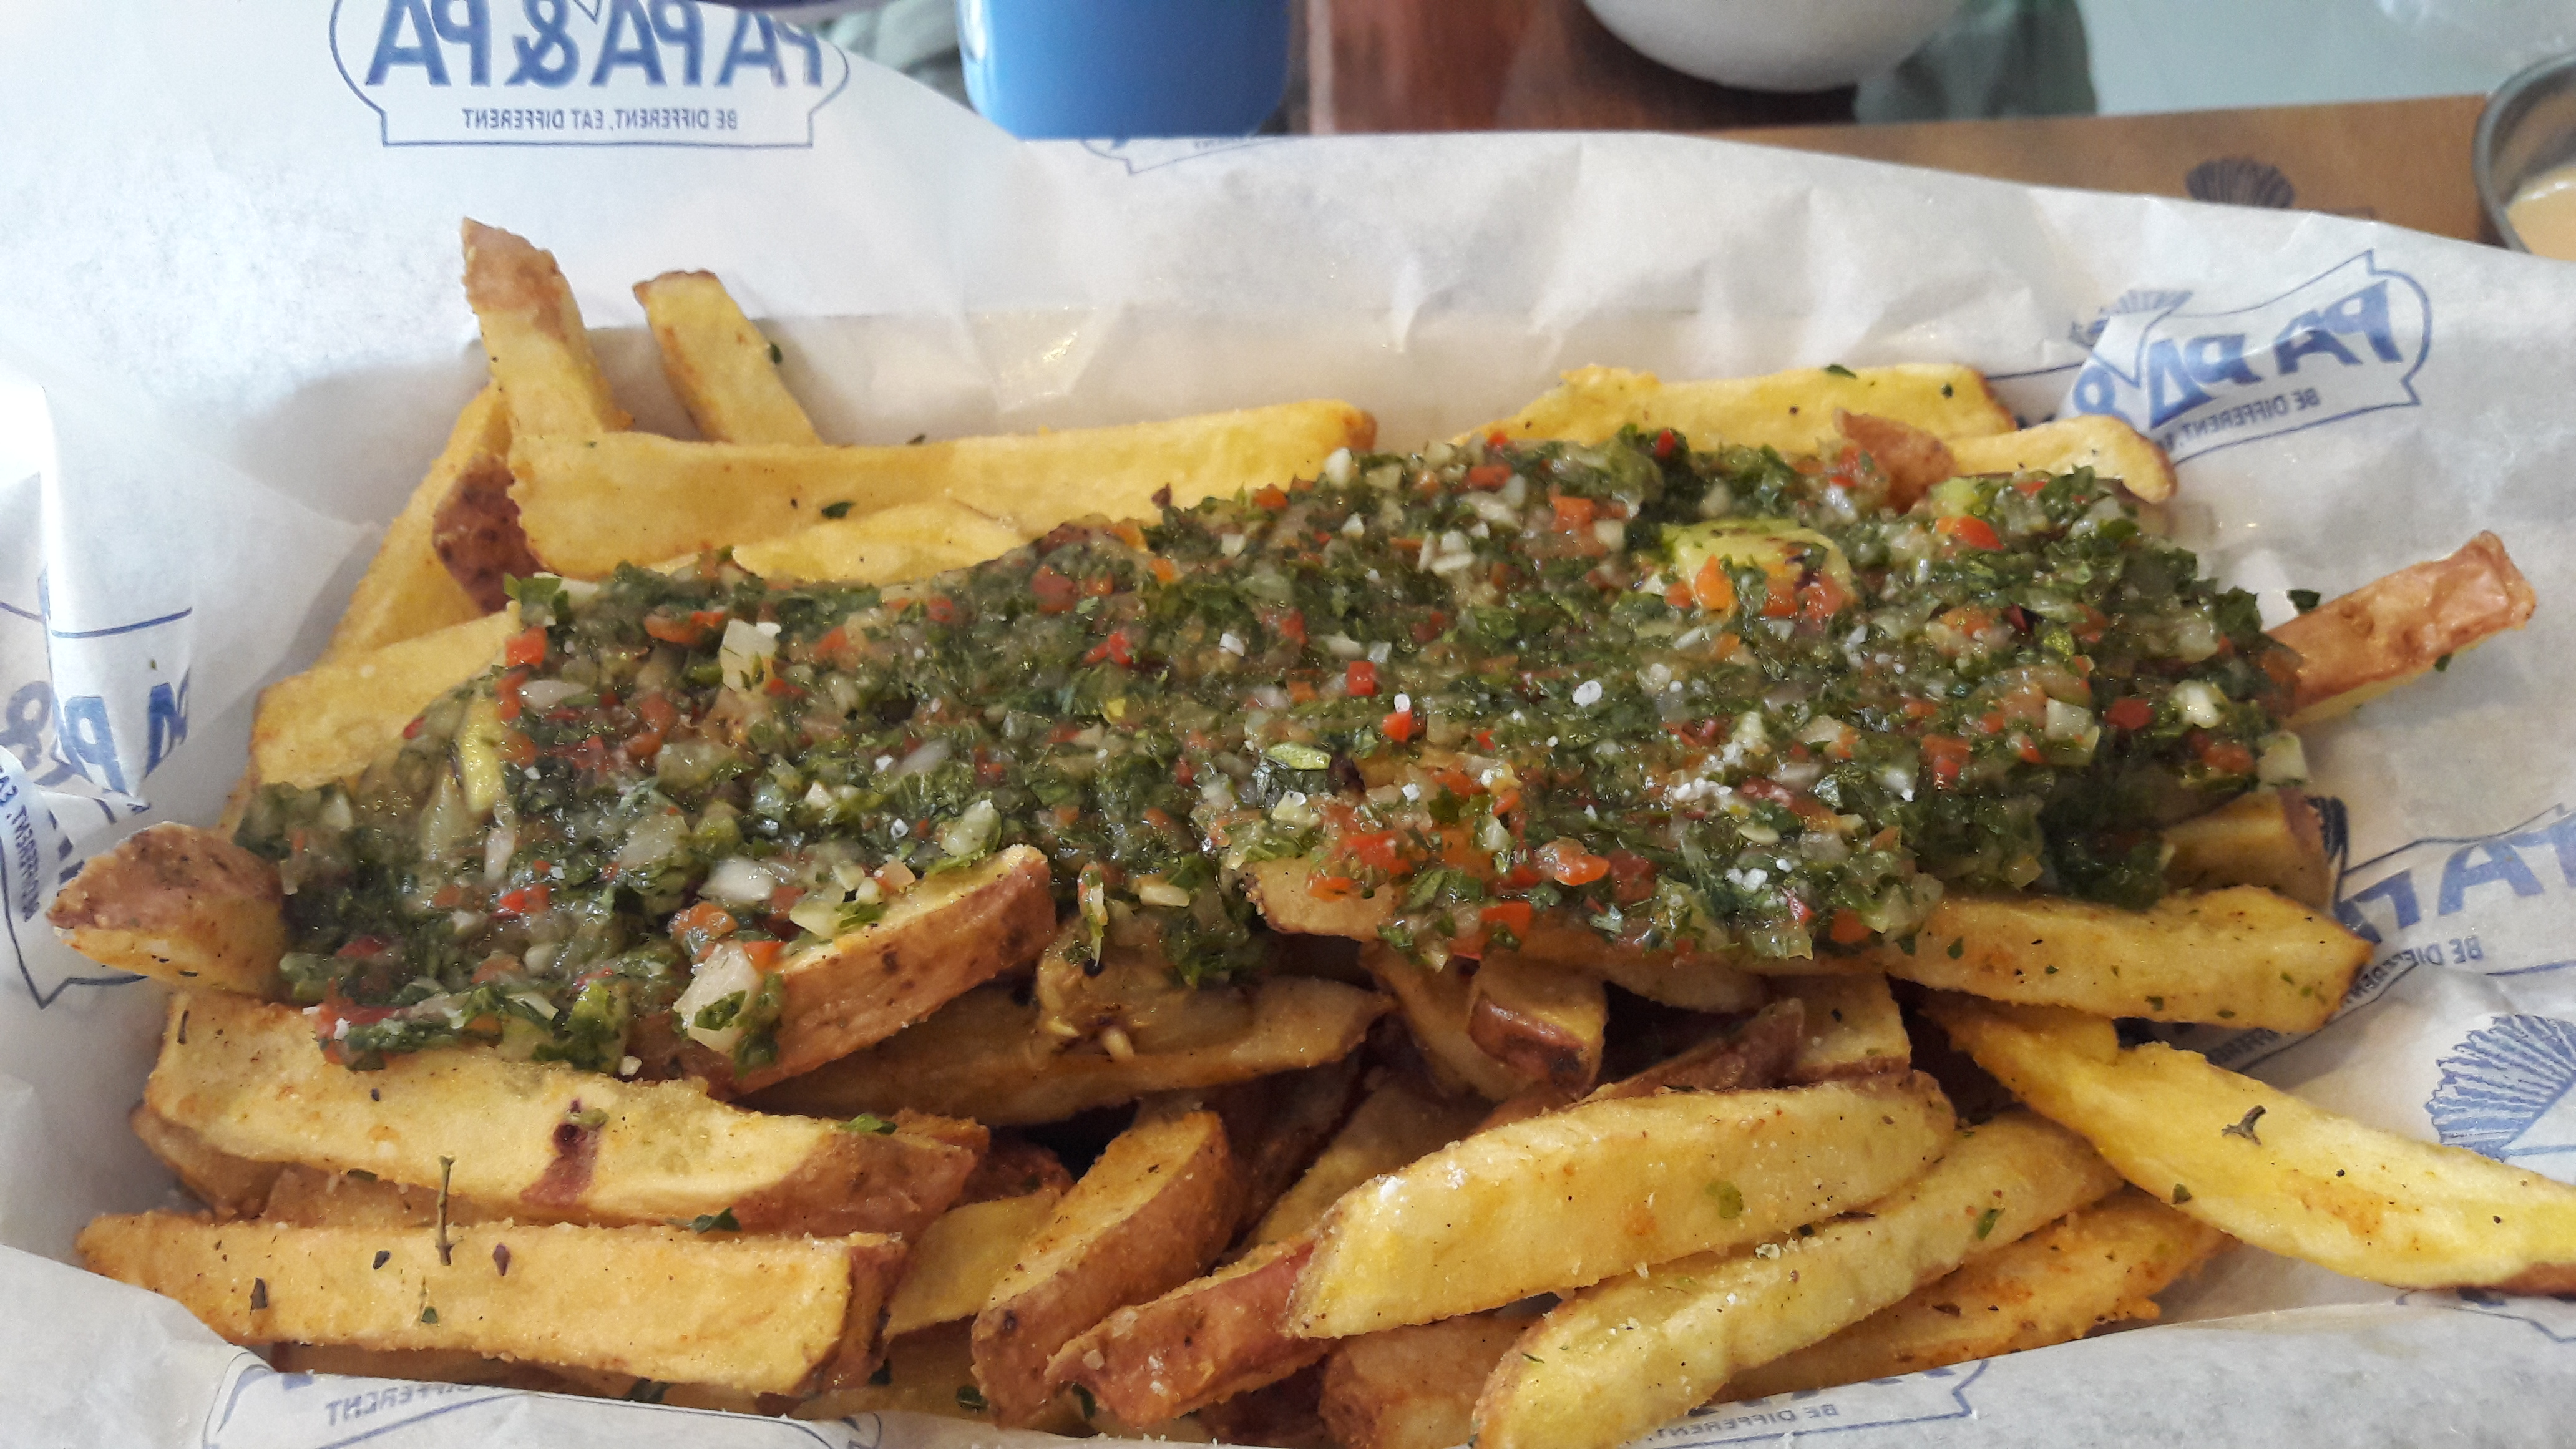 French fires with a topping of chimichurri sauce